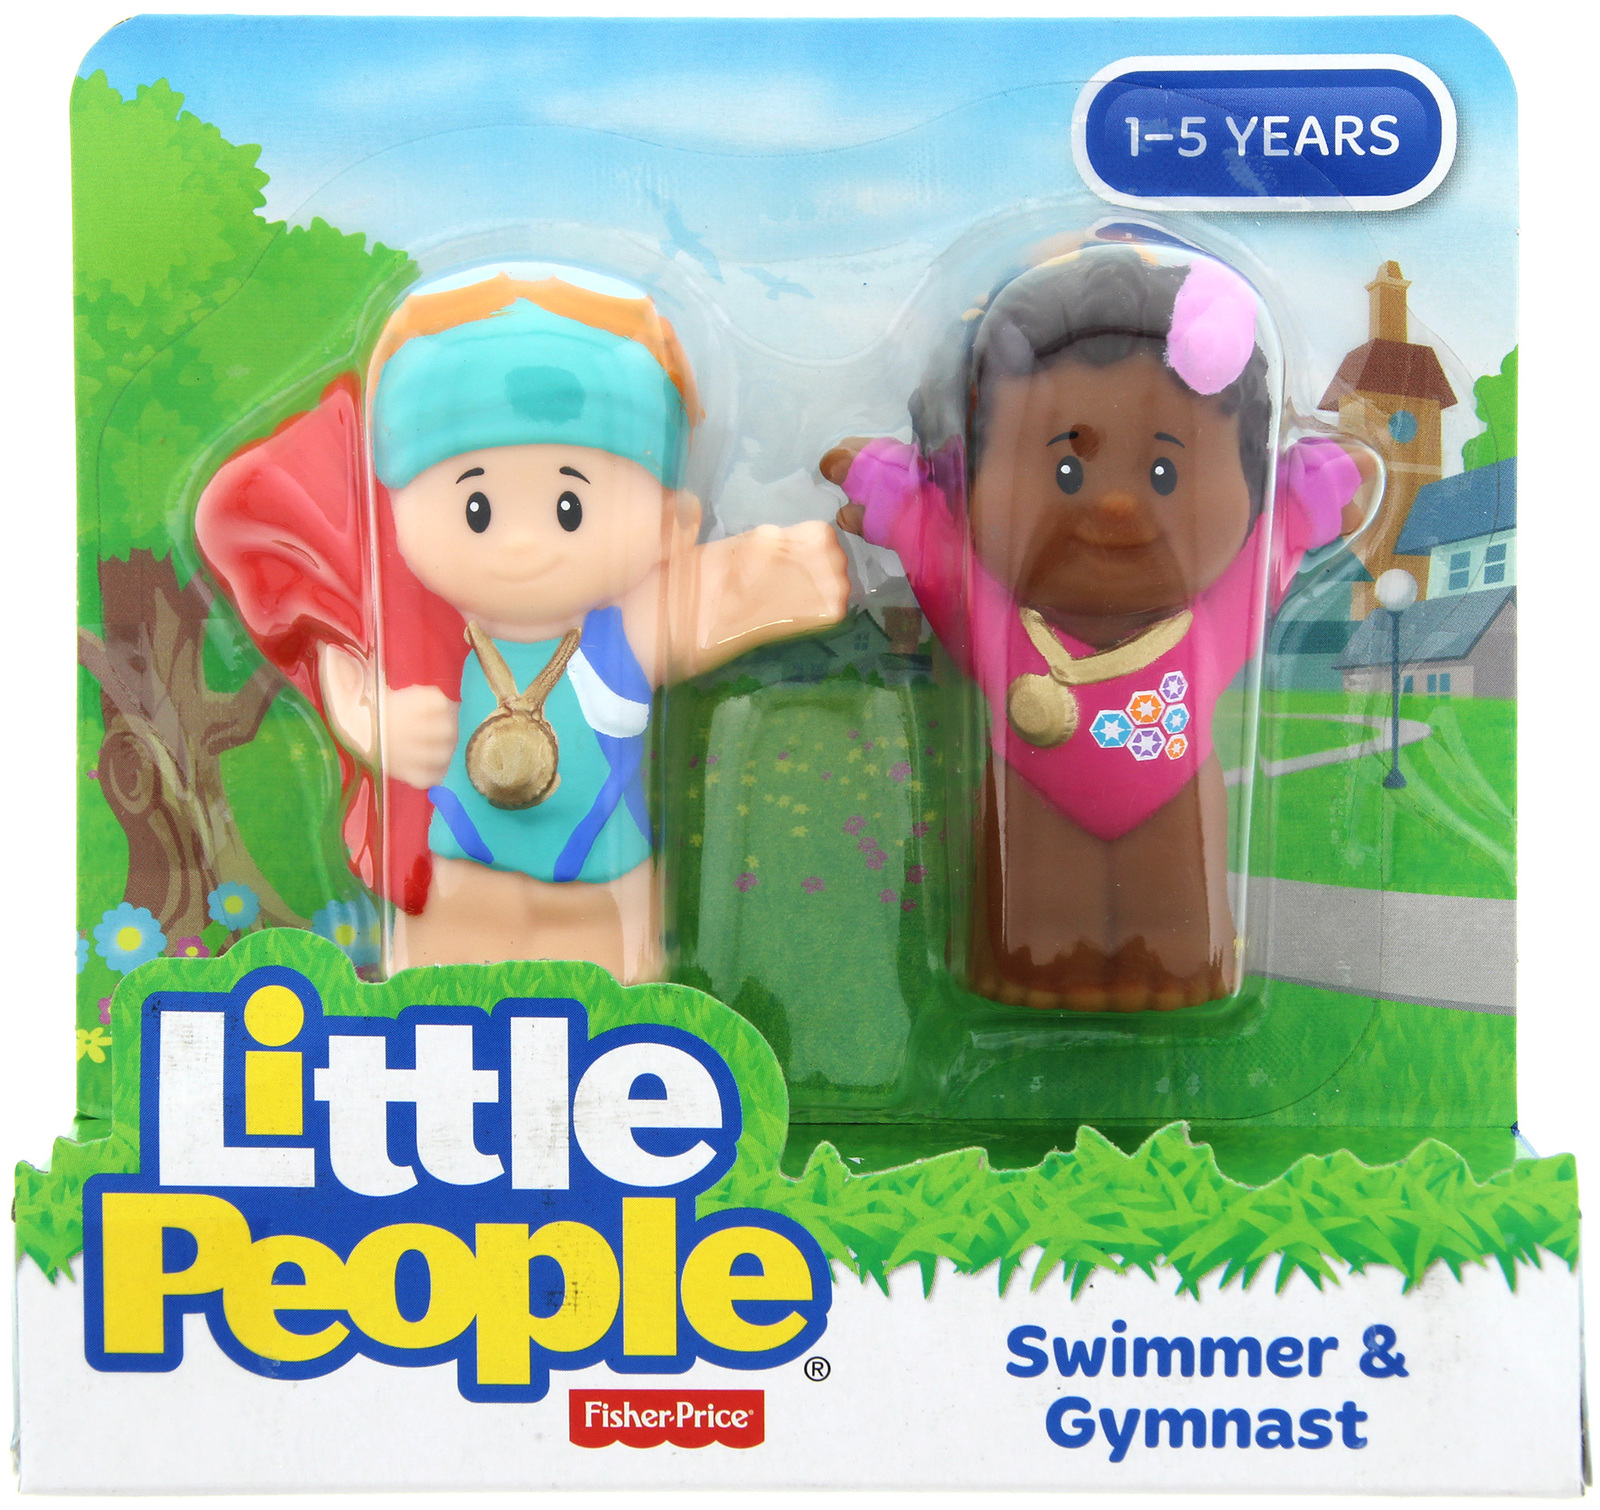 Fisher-Price: Little People - Swimmer & Gymnast image